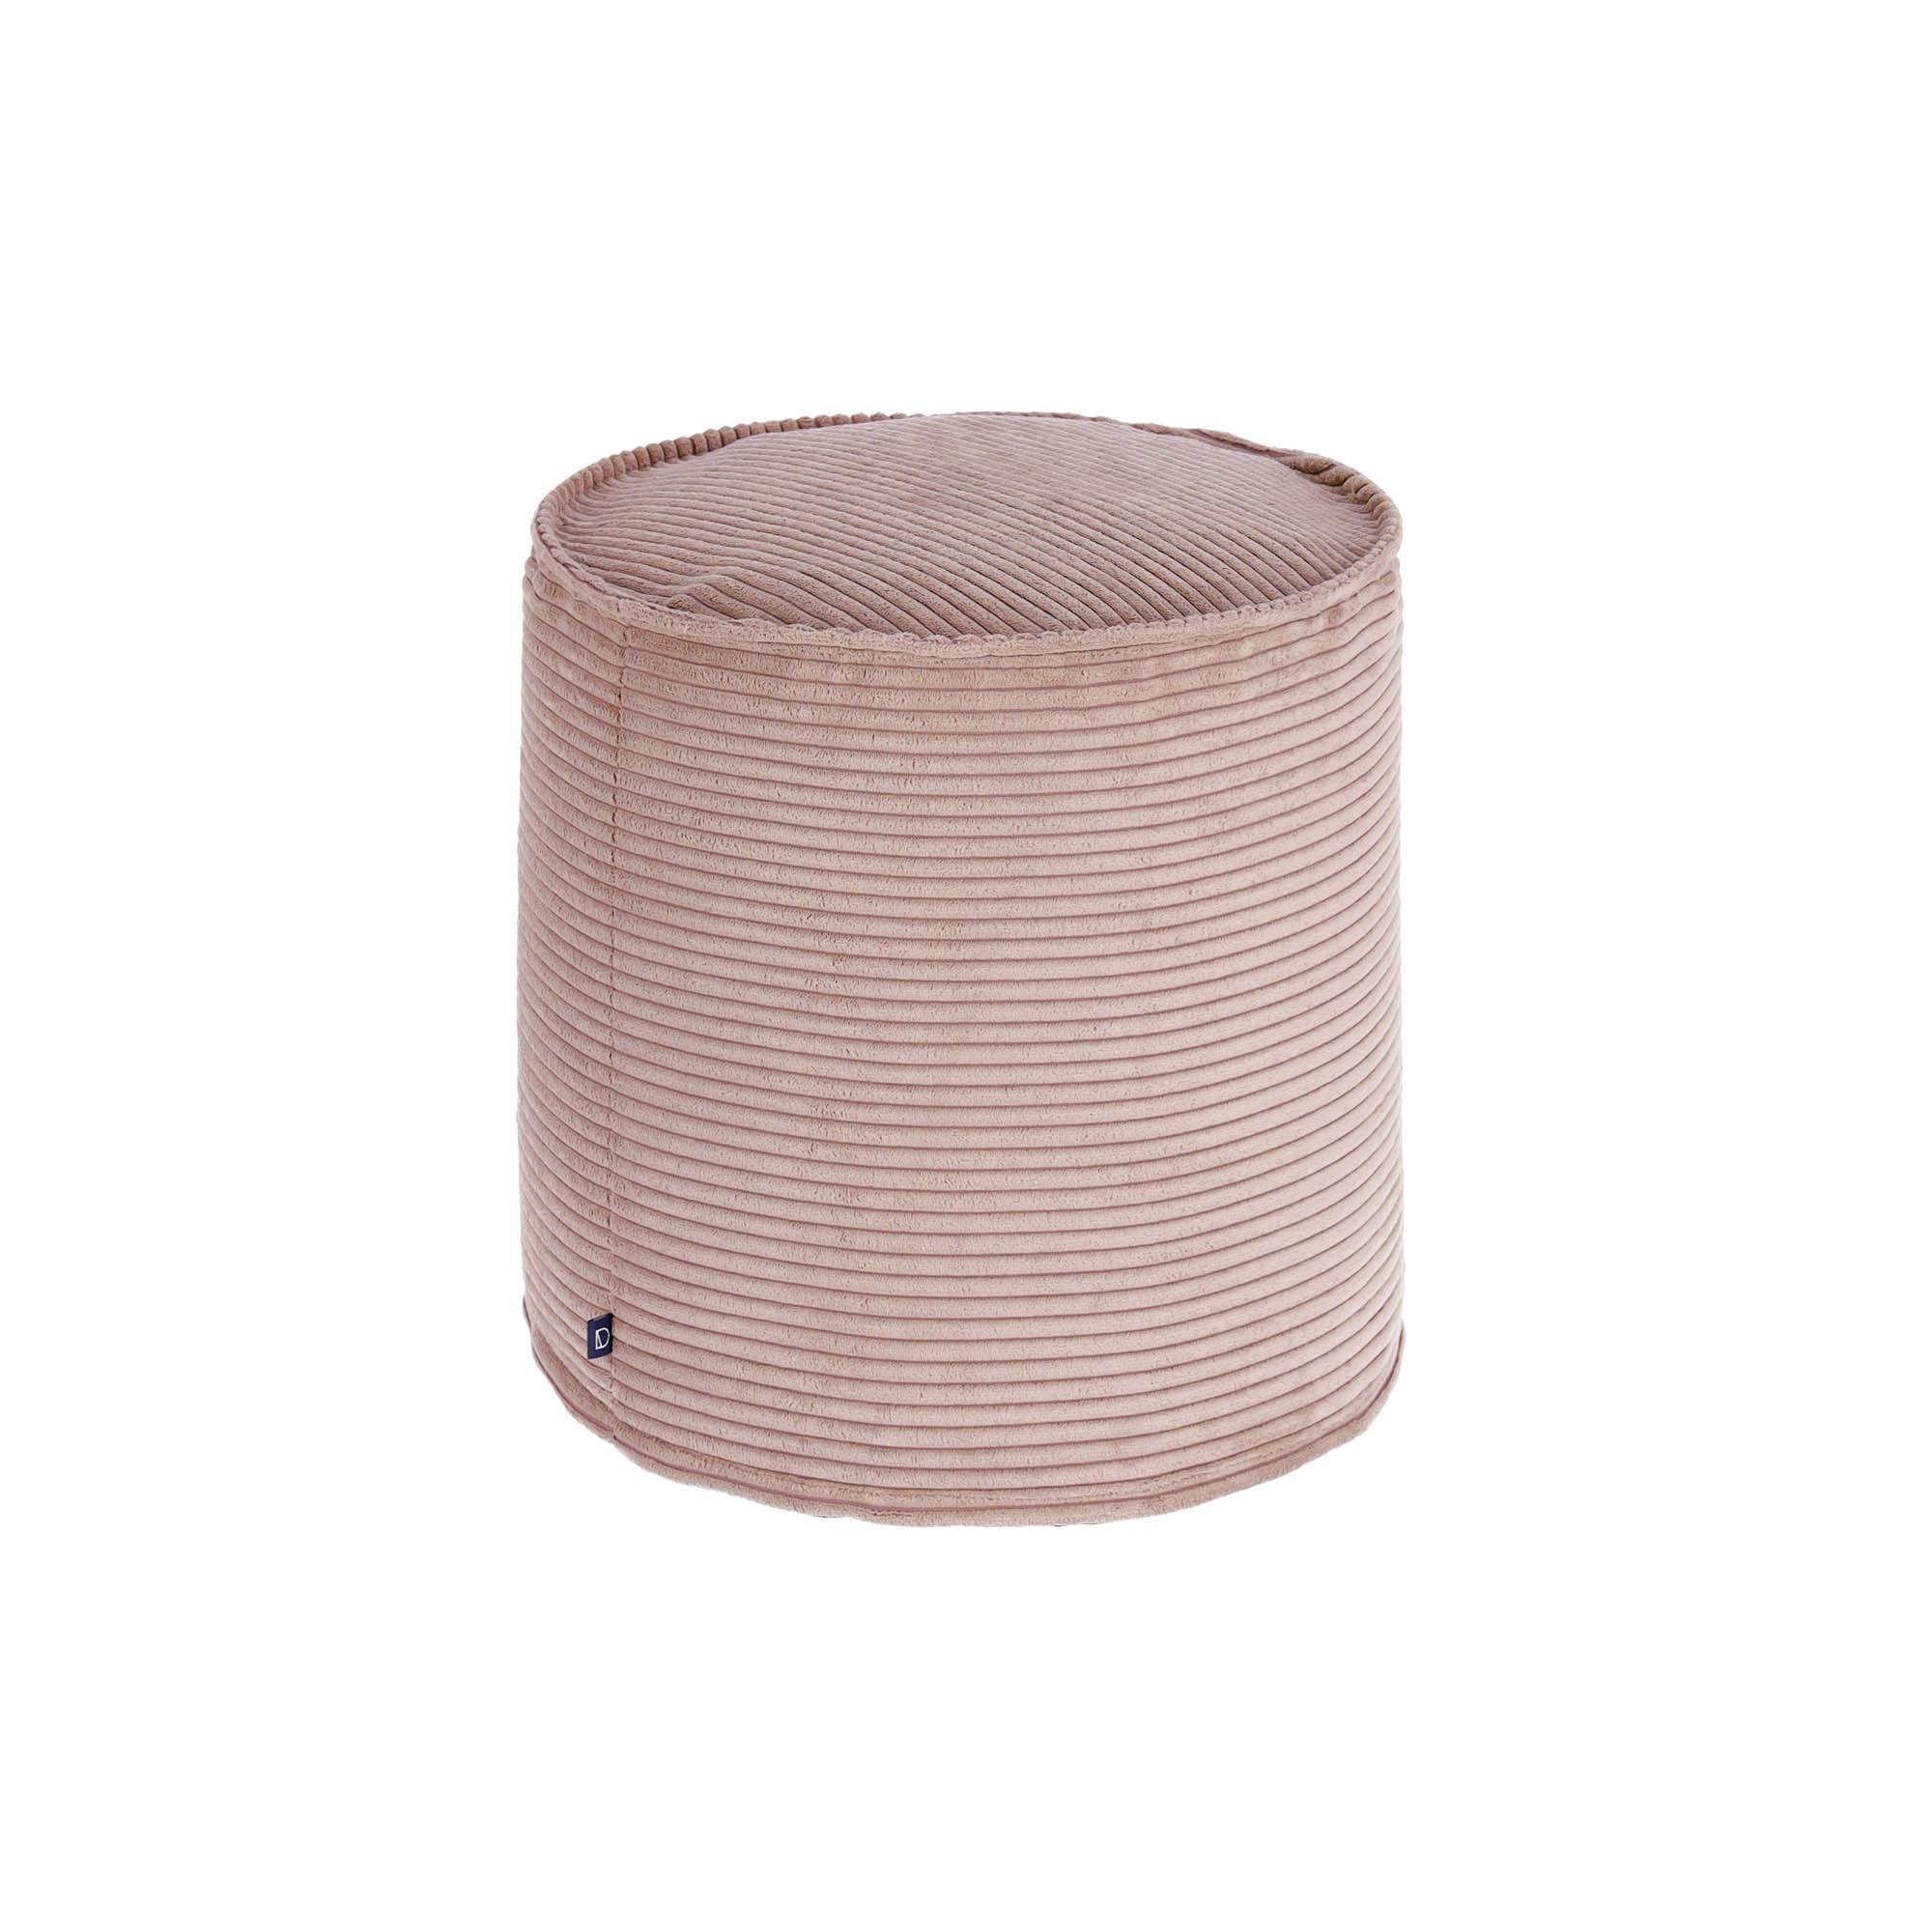 Kave Home Pouf piccolo Wilma Ø 40 cm velluto a coste rosa